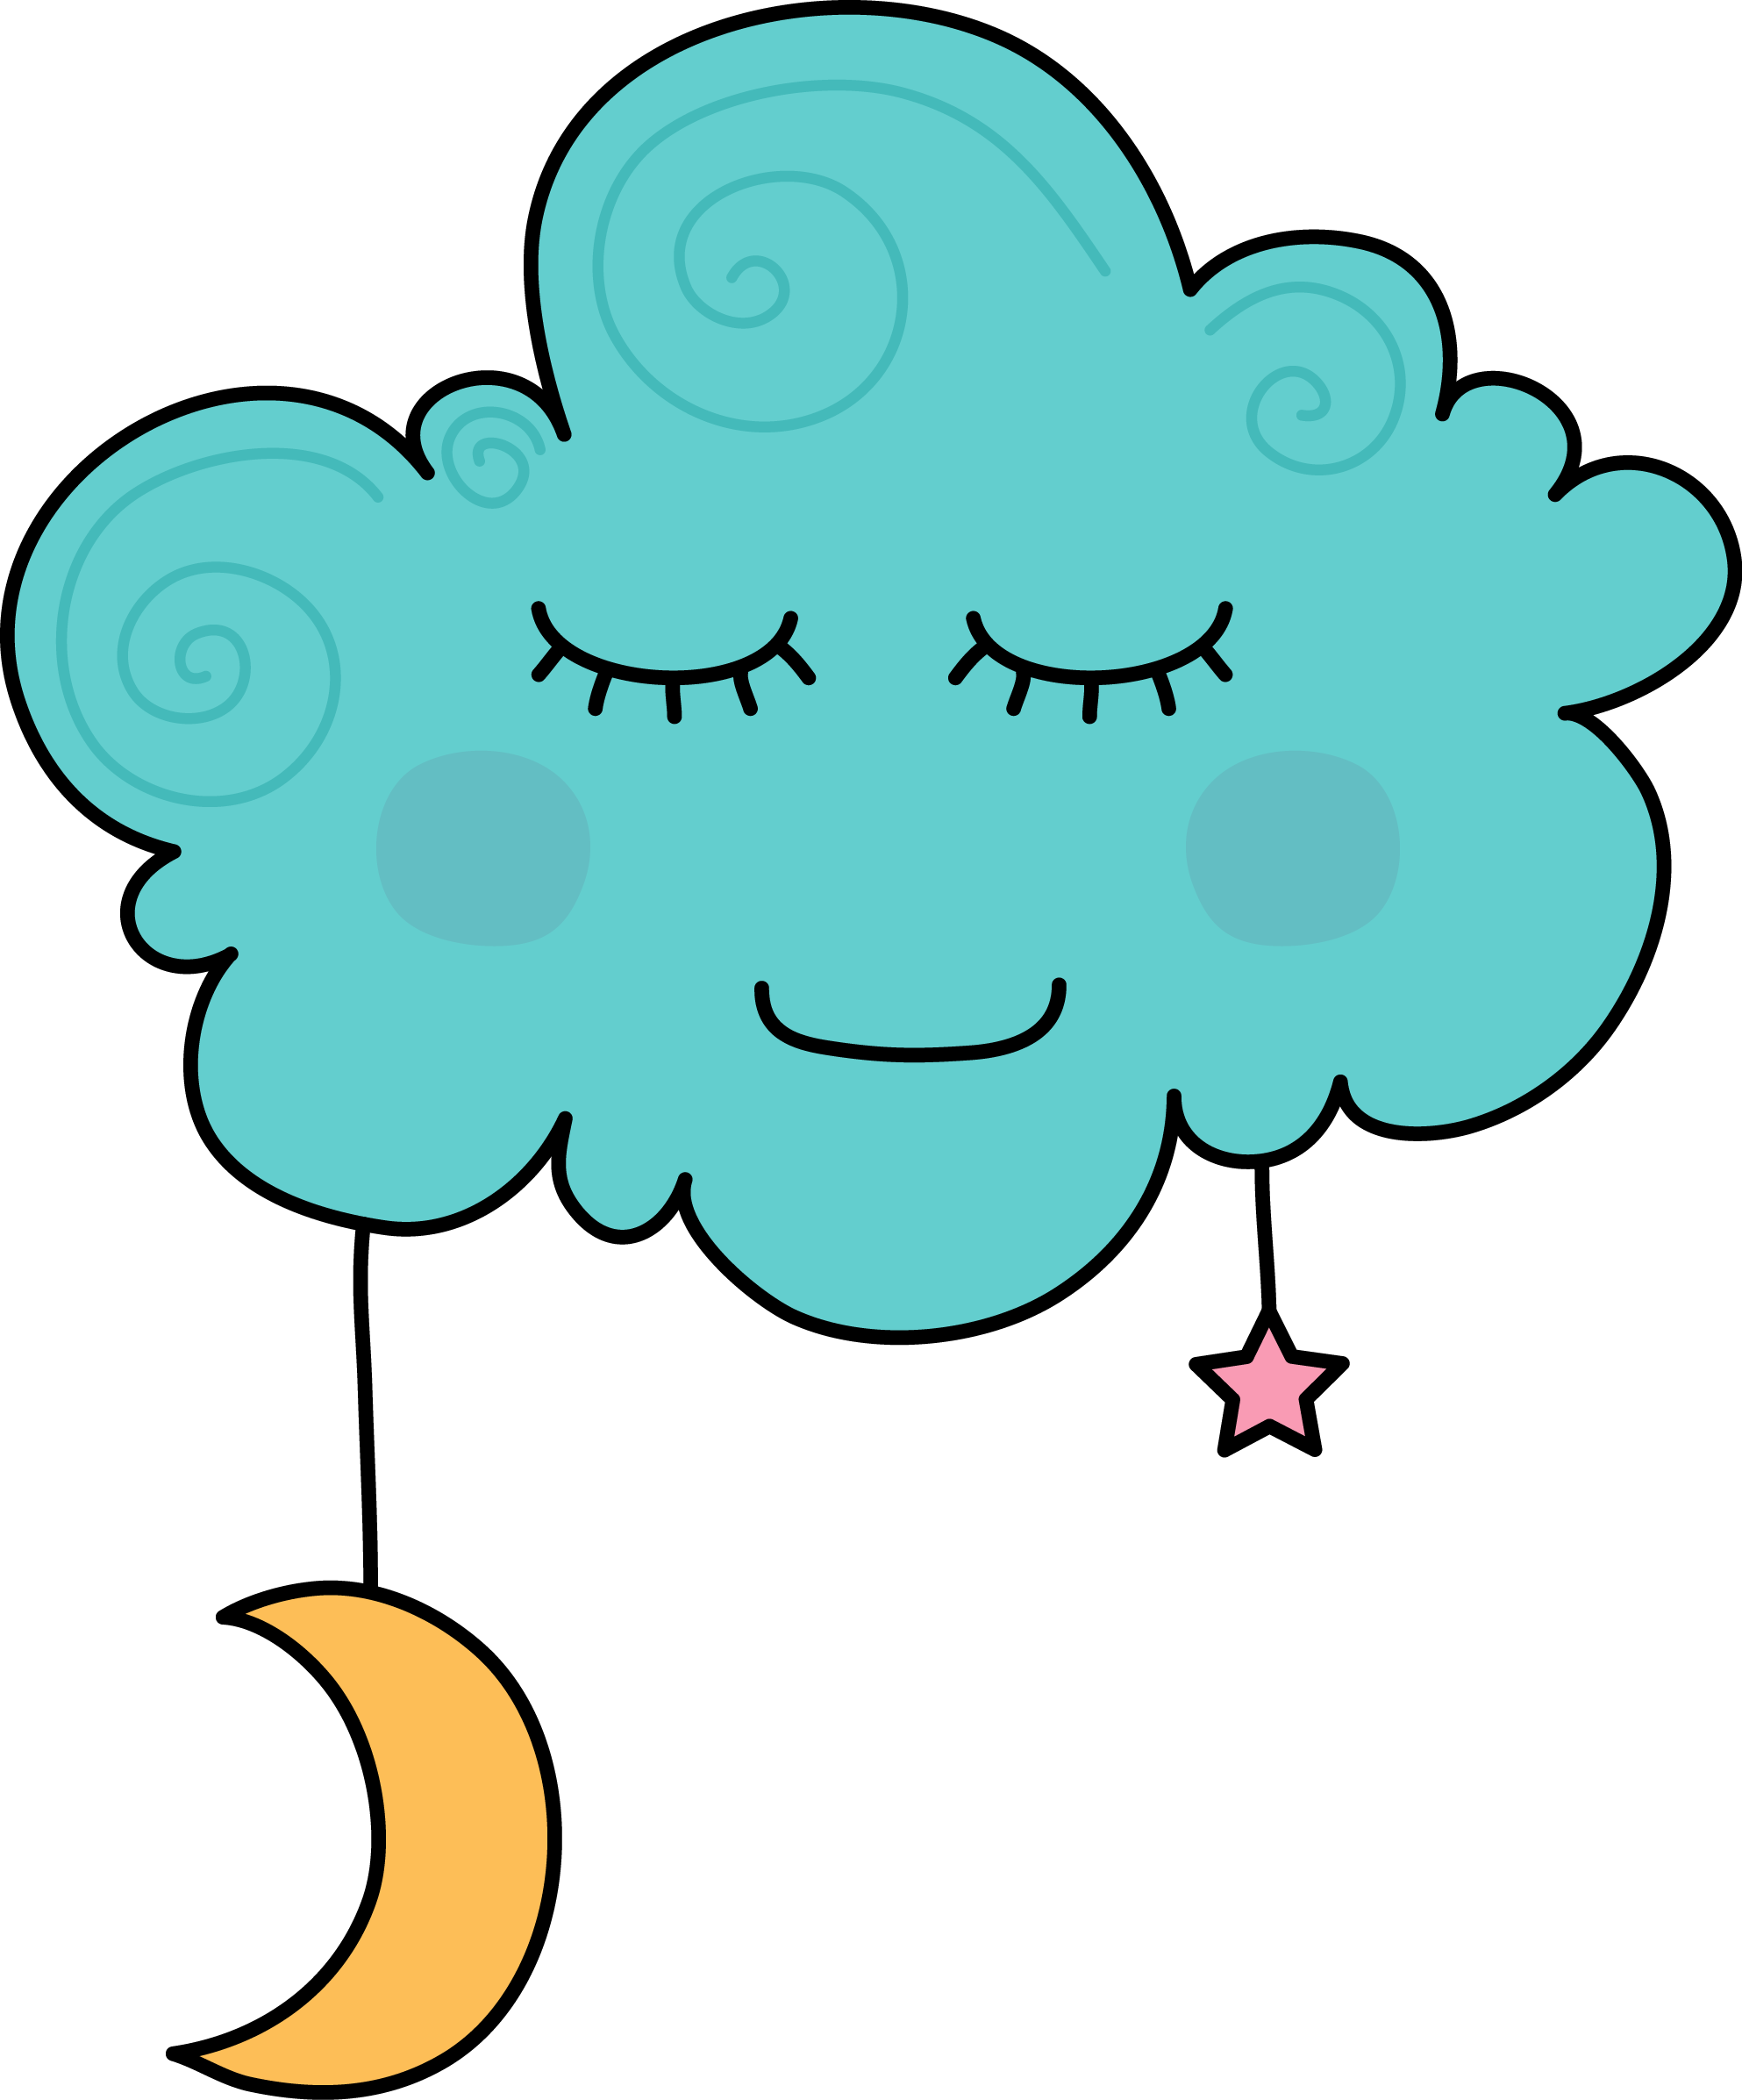 Cloud and snowflake clipart picture freeuse download Dreaming Clipart Cloud Cartoon | jokingart.com Cloud Clipart picture freeuse download